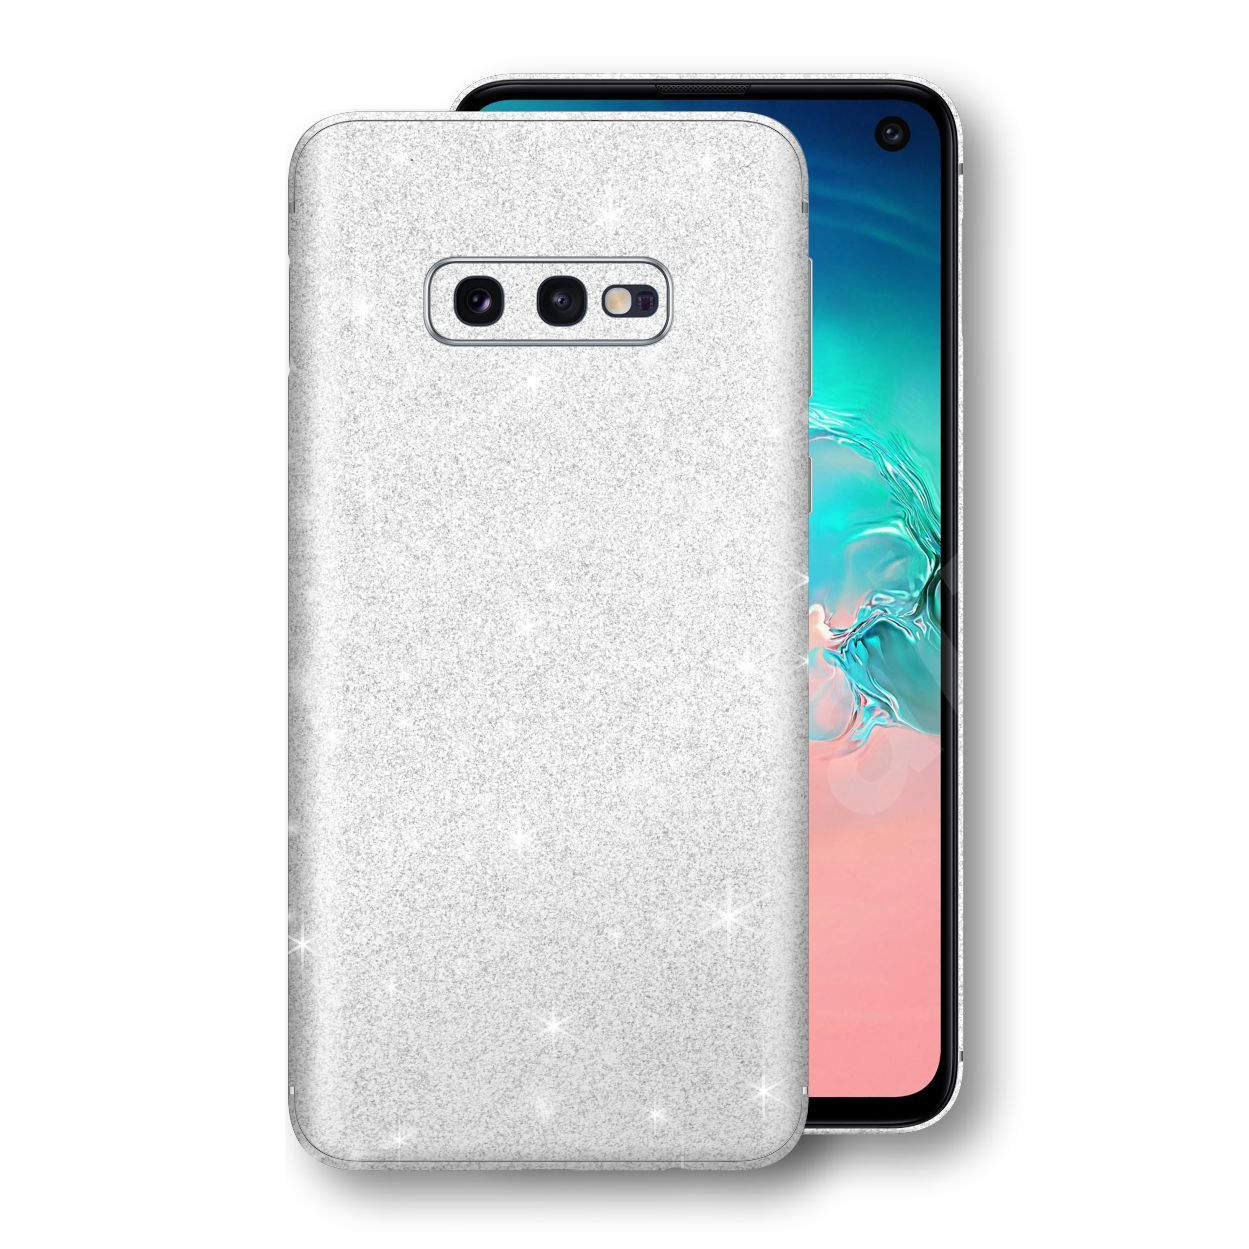 Samsung Galaxy S10e Diamond White Shimmering, Sparkling, Glitter Skin, Decal, Wrap, Protector, Cover by EasySkinz | EasySkinz.com